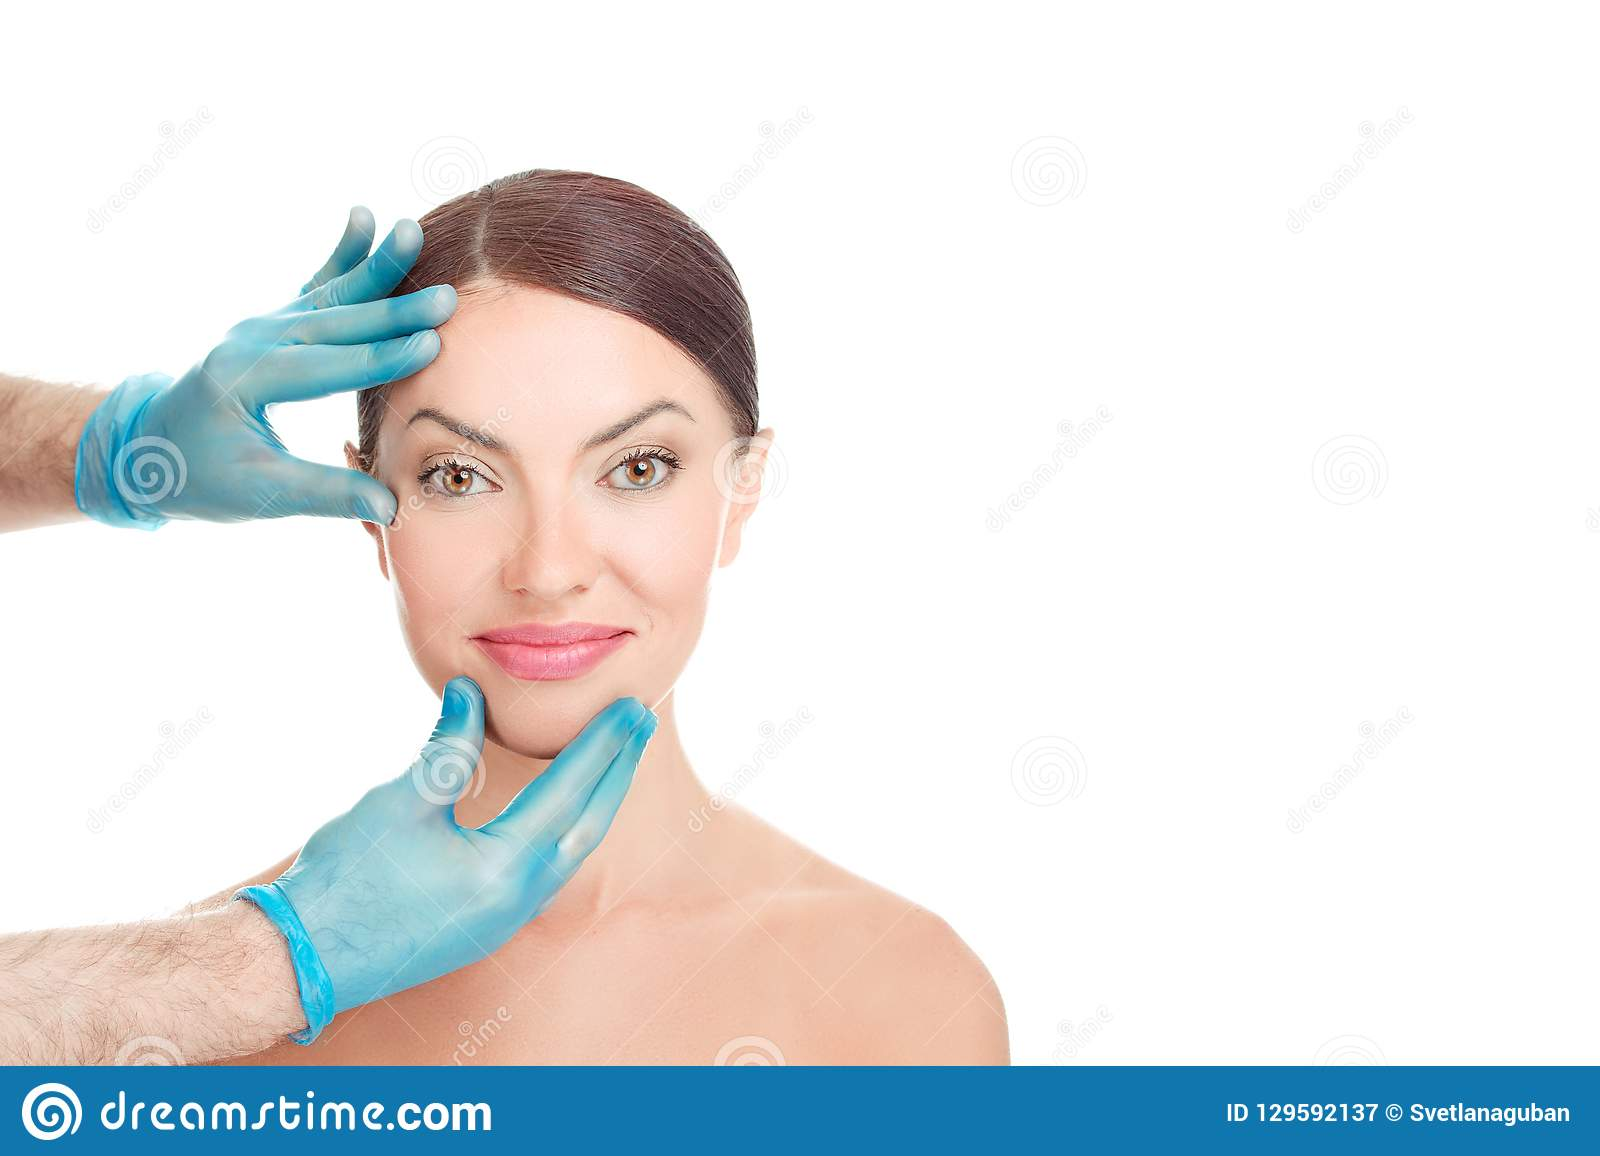 5 086 Aesthetic Surgery White Background Photos Free Royalty Free Stock Photos From Dreamstime